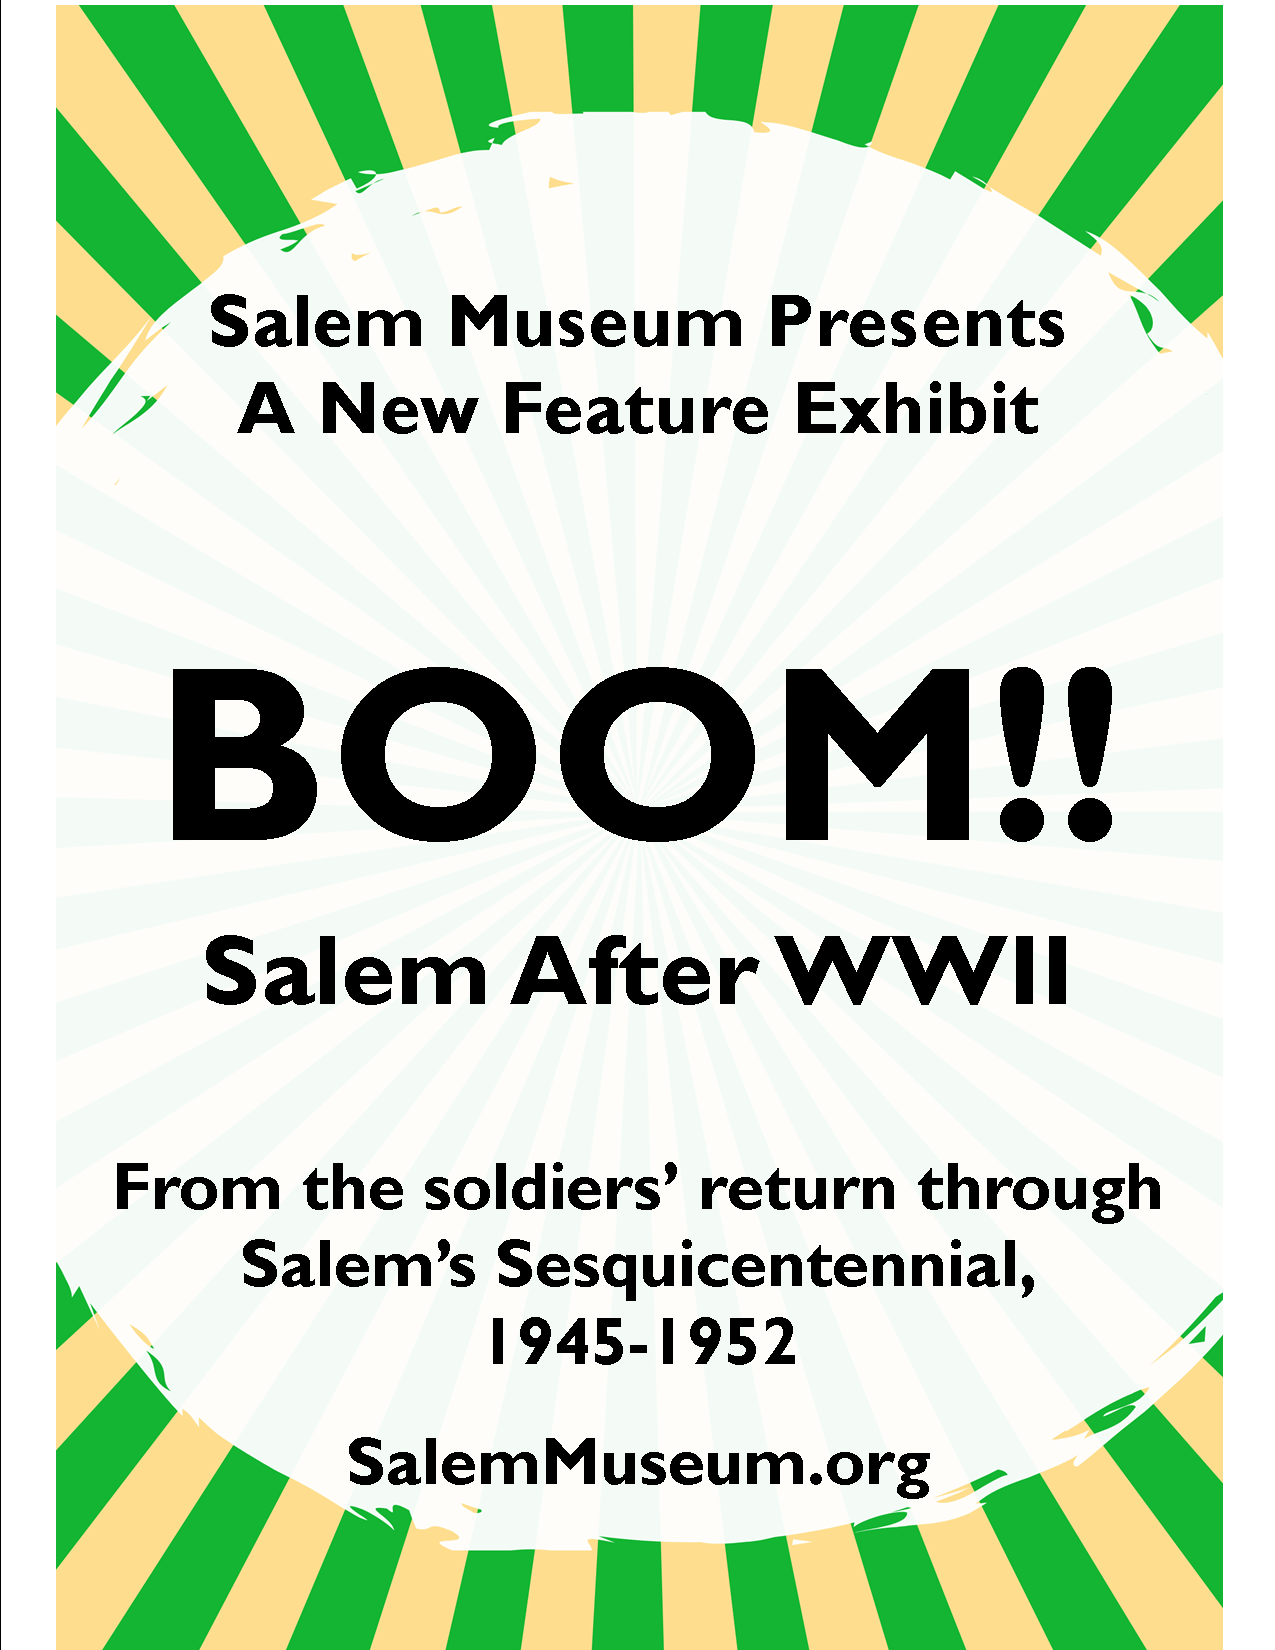 BOOM! Salem After WWII:  Announcing a new feature exhibit at the Salem Museum